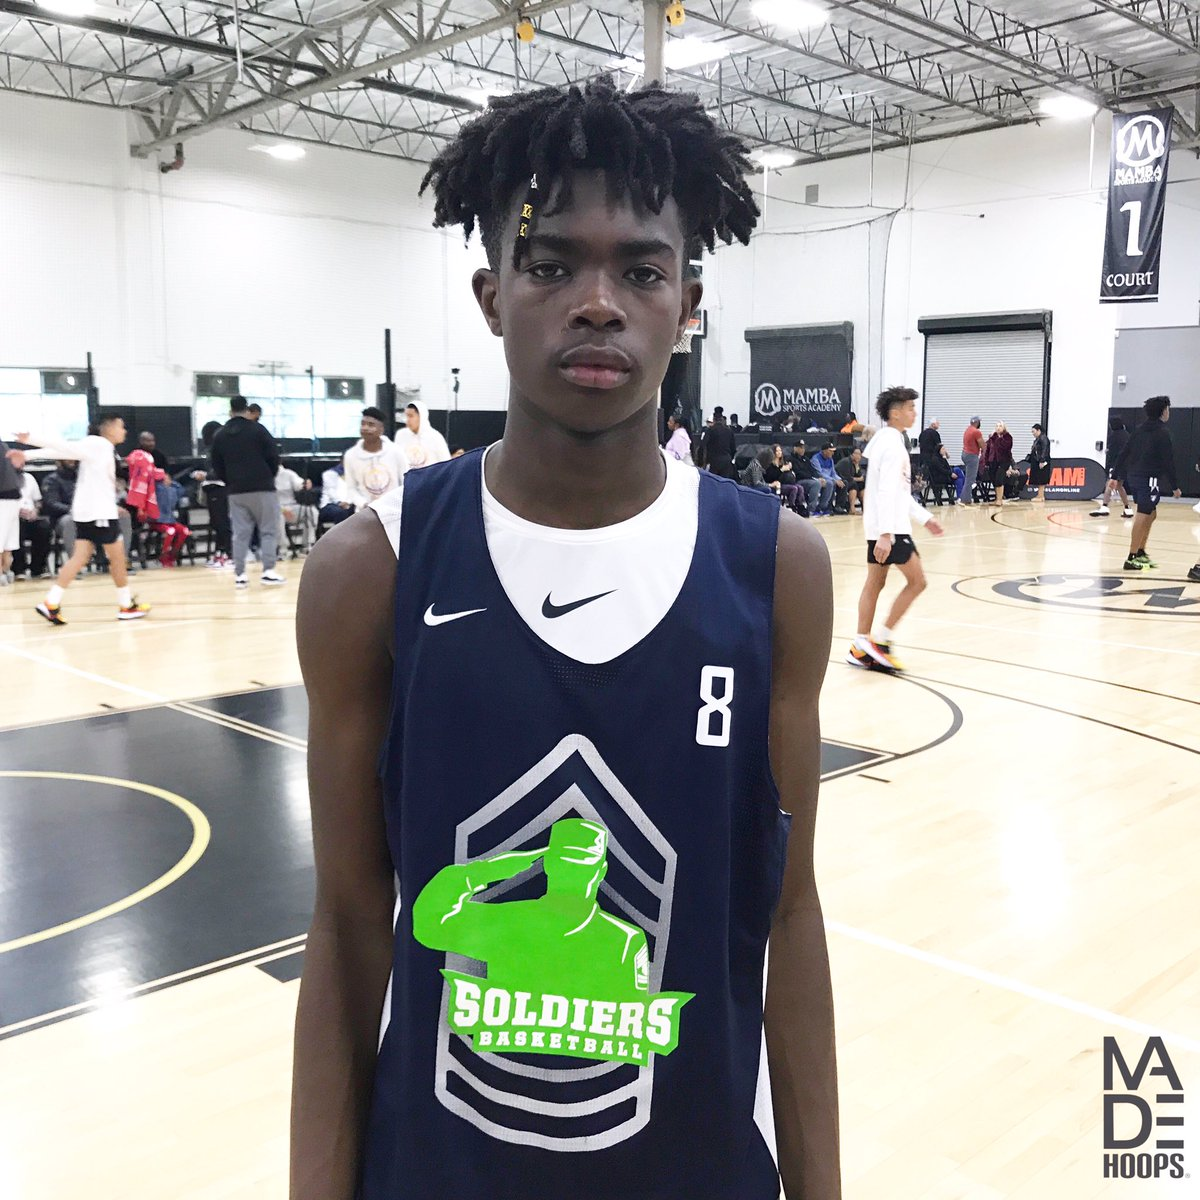 "2024 6'3"" wing Seven Bahati (Los Angeles, CA) really put together a strong weekend at #WestLea8ue. He showed three-level scoring ability. Now it's just a matter of his impressive skills translating to games more consistently. 📈 https://t.co/E755fJChSw"